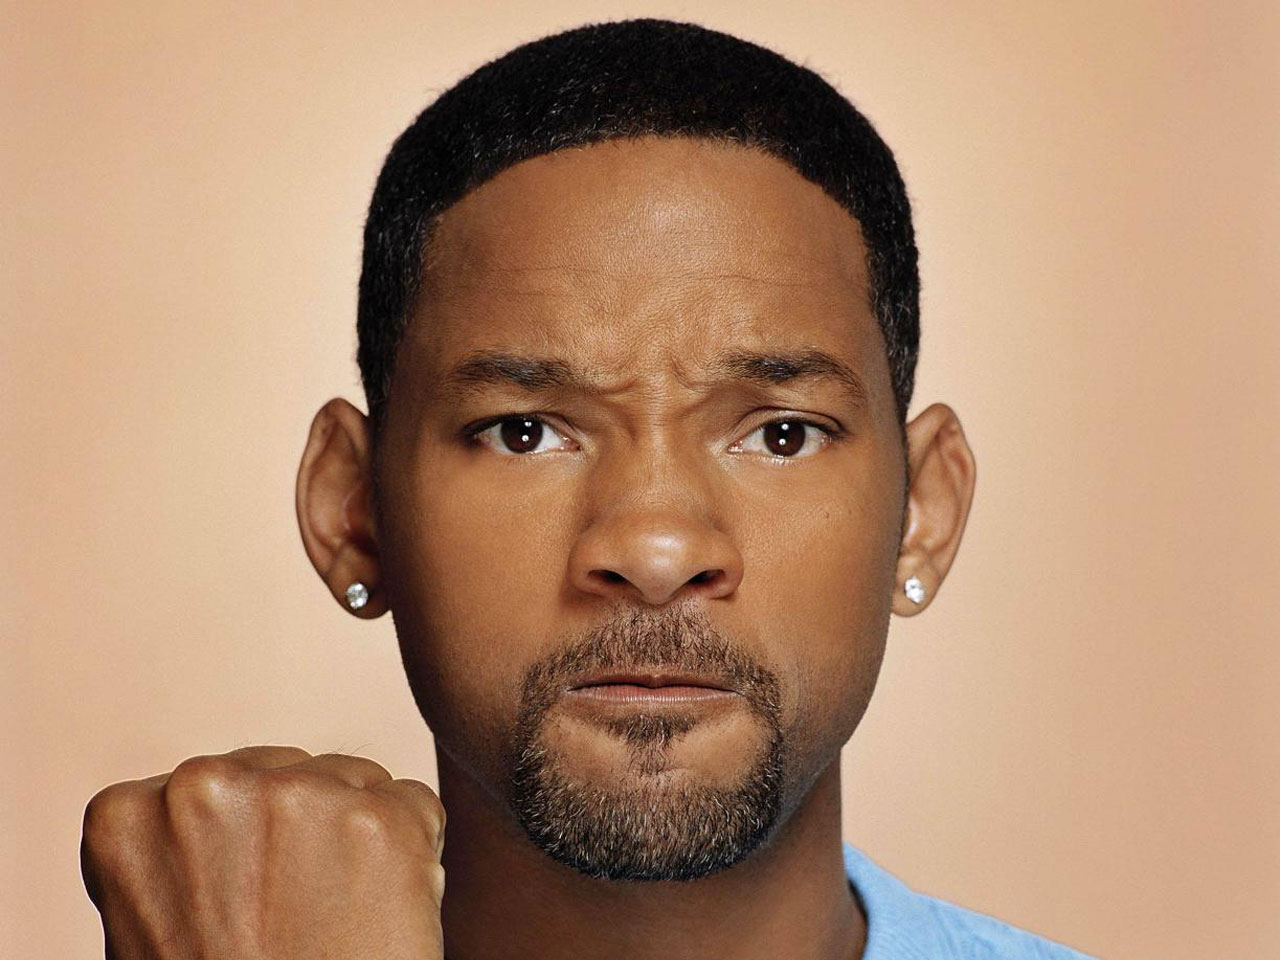 Will Smith Picture - Image 16 - Actors-Pictures.com Will Smith